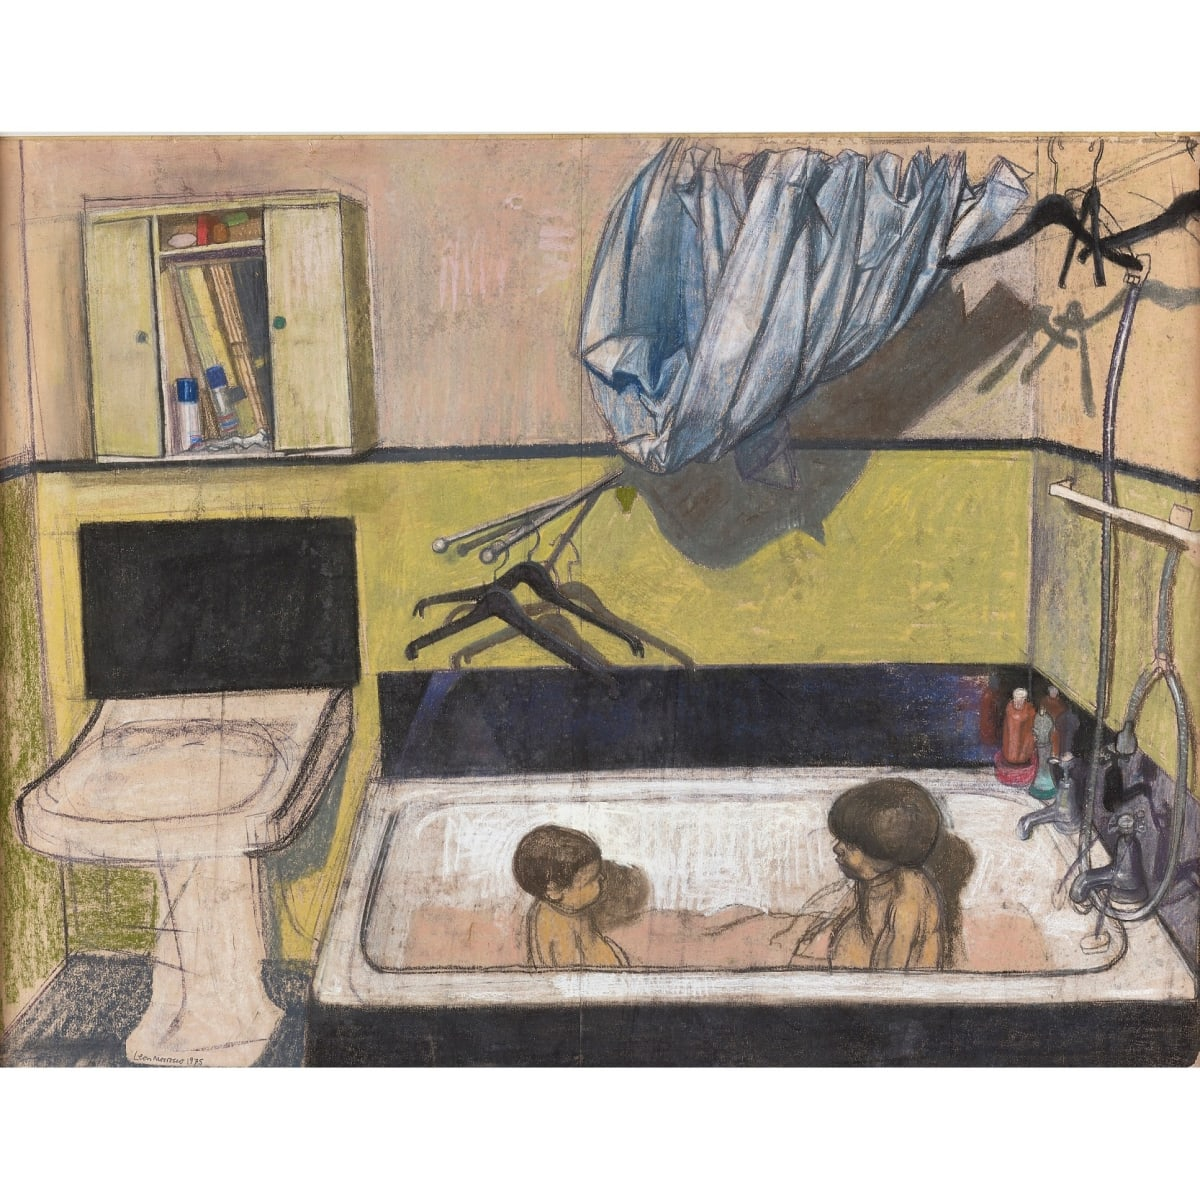 Leon Morrocco RSA The boys in the bath, 1975 signed and dated 1975 pastel 76.2 x 99 cm